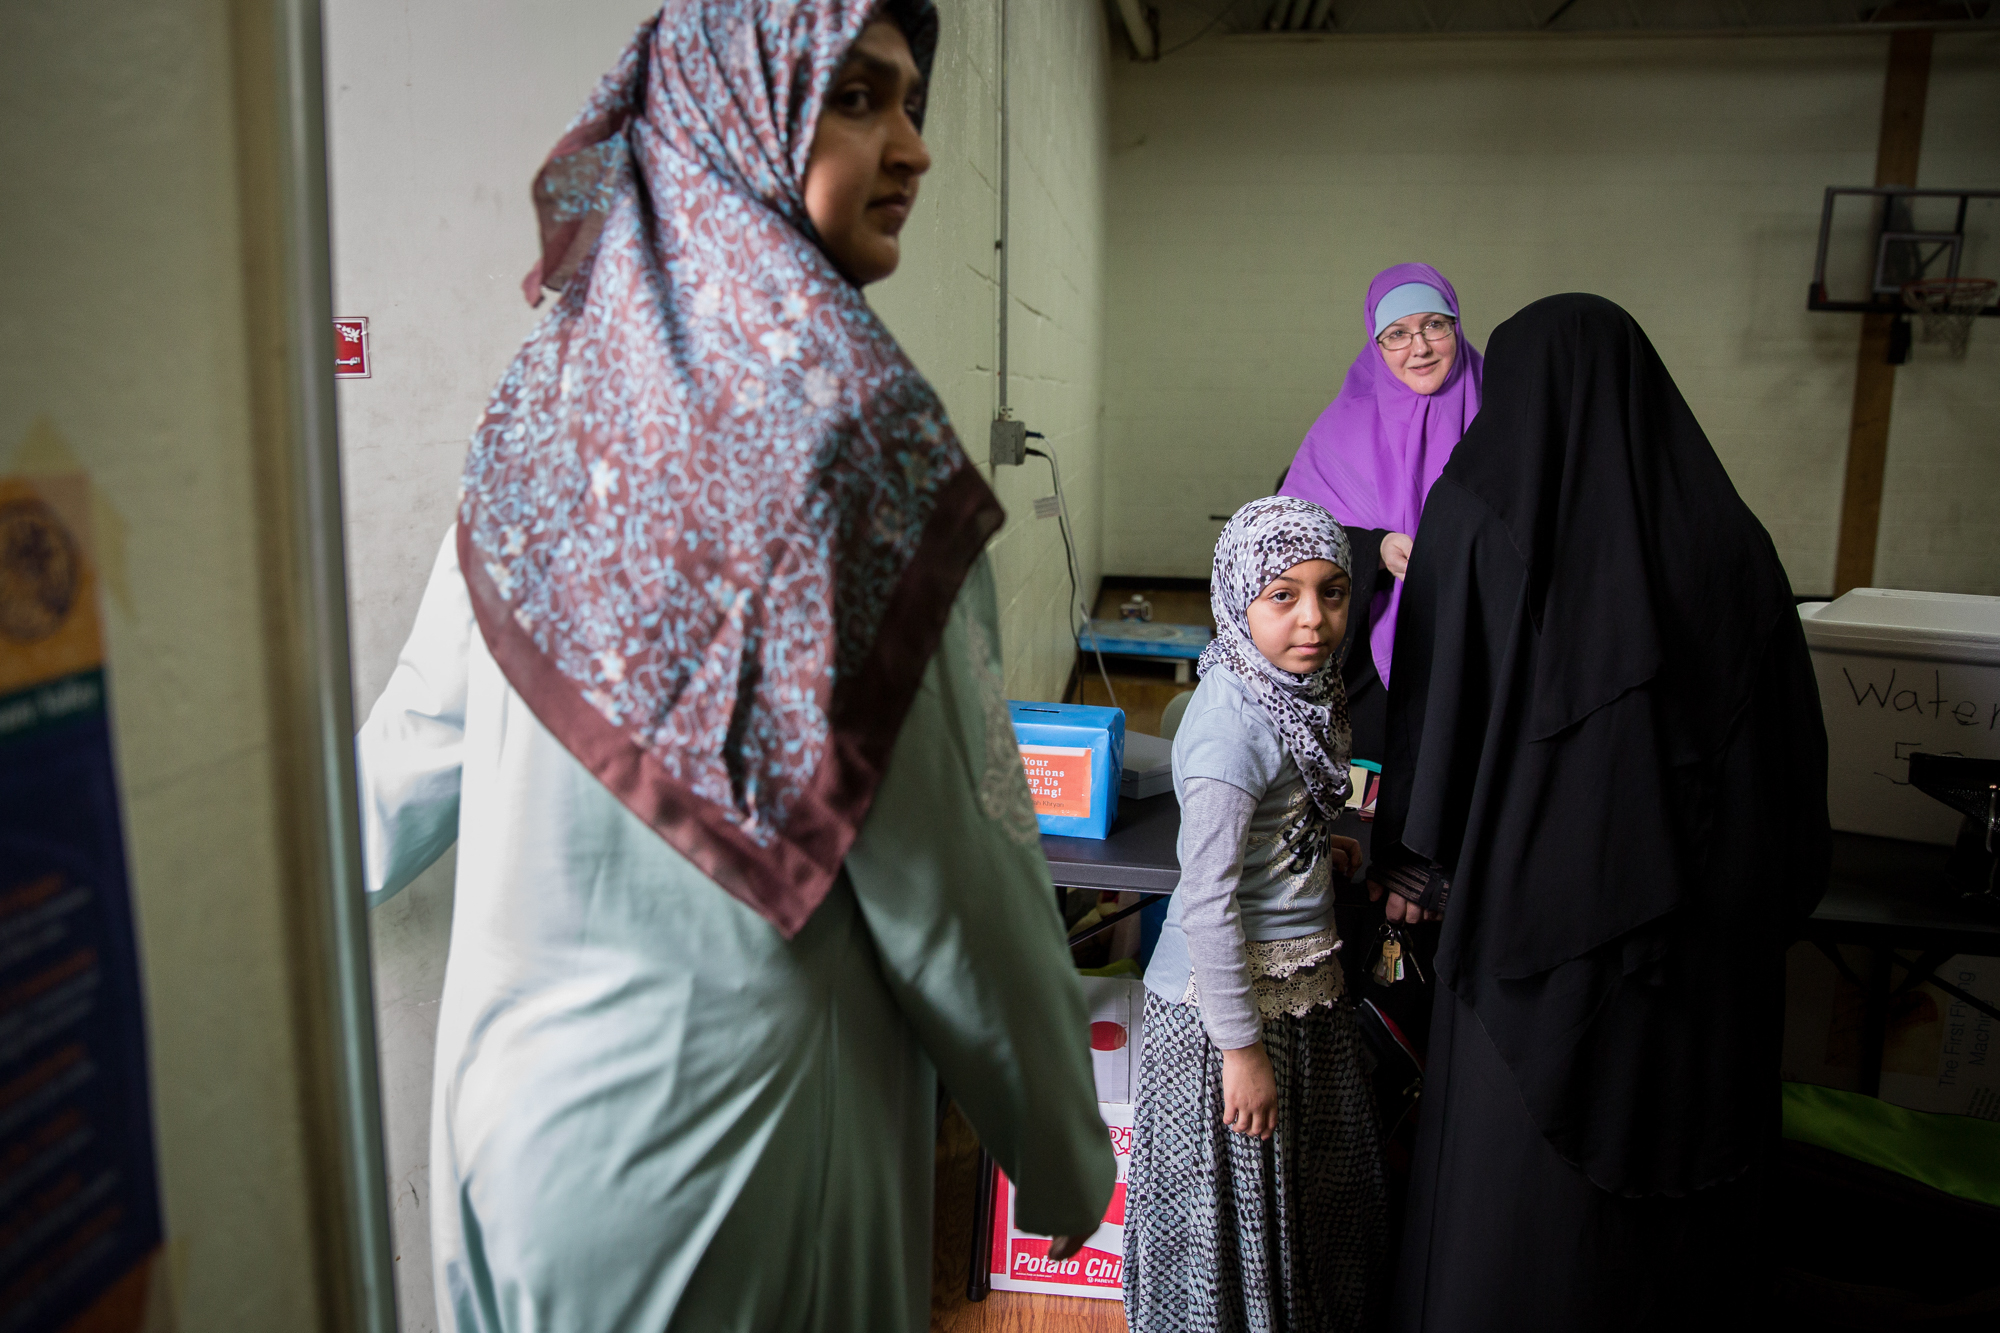 Malik, center, waits patiently to leave as her mother talks to Kareema after an event at the Masjid in Mechanicsburg.